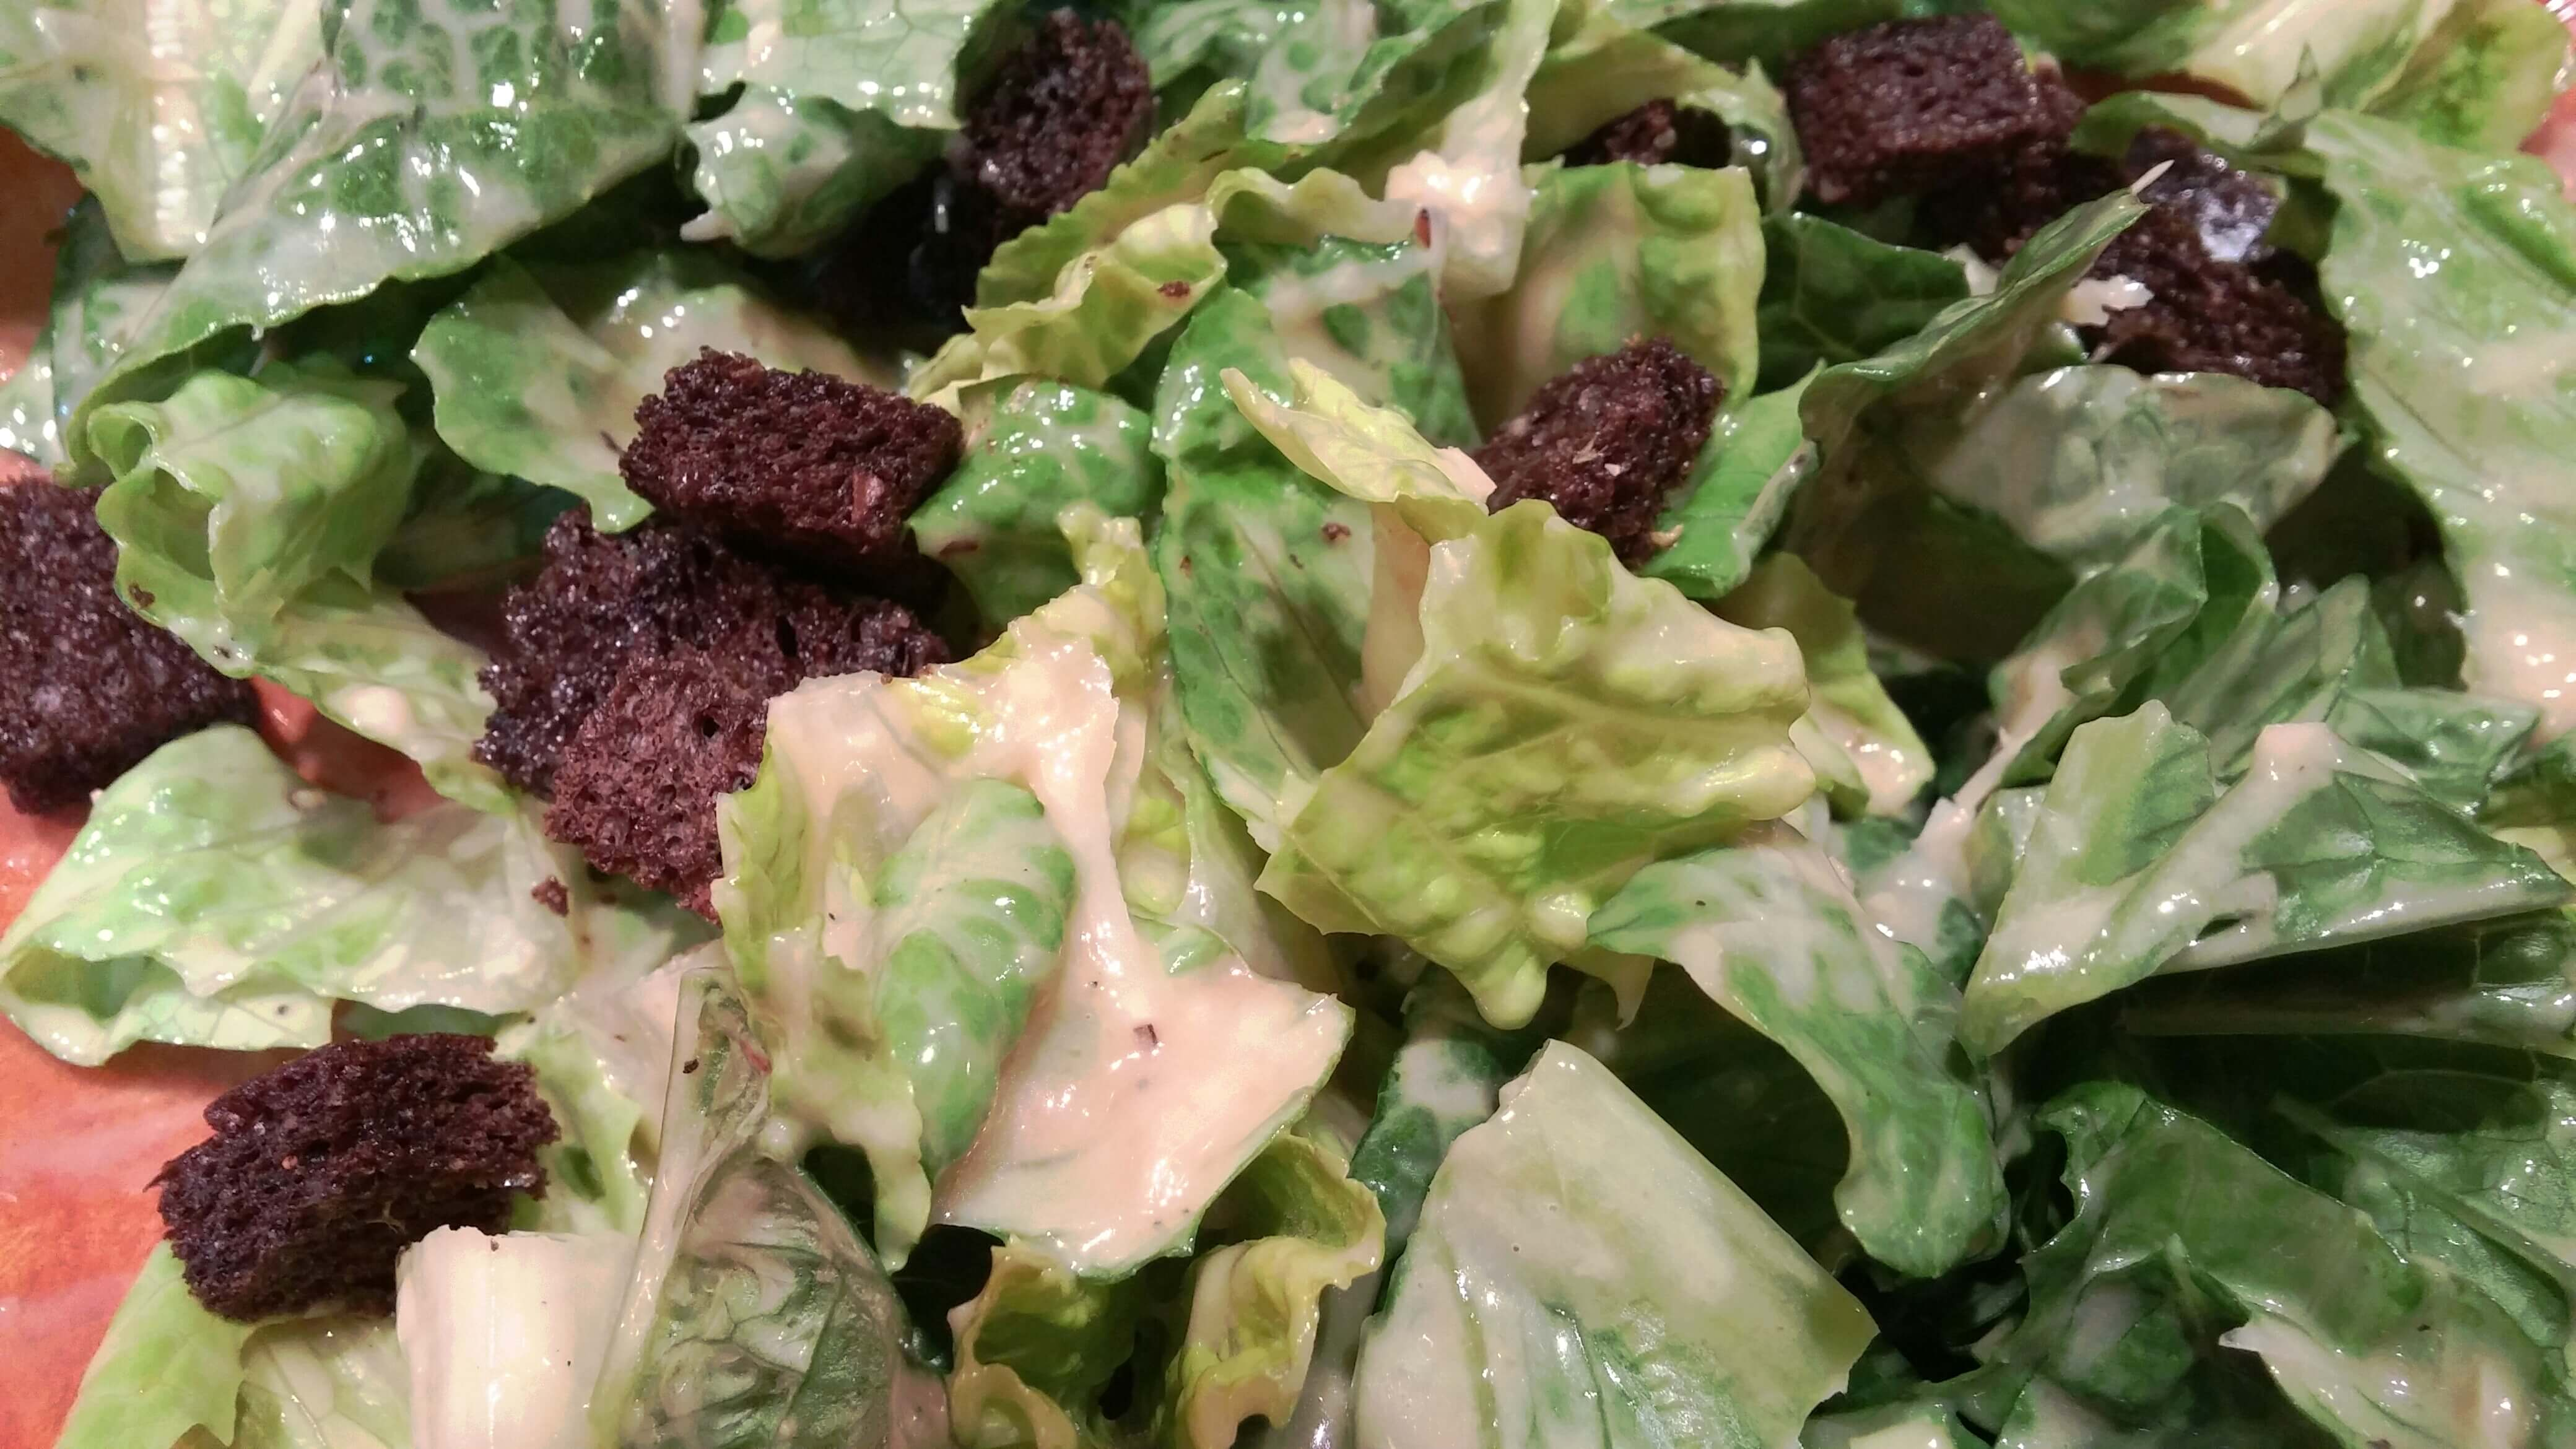 ... Caesar salad. I believe the same is true for almost anyone under the